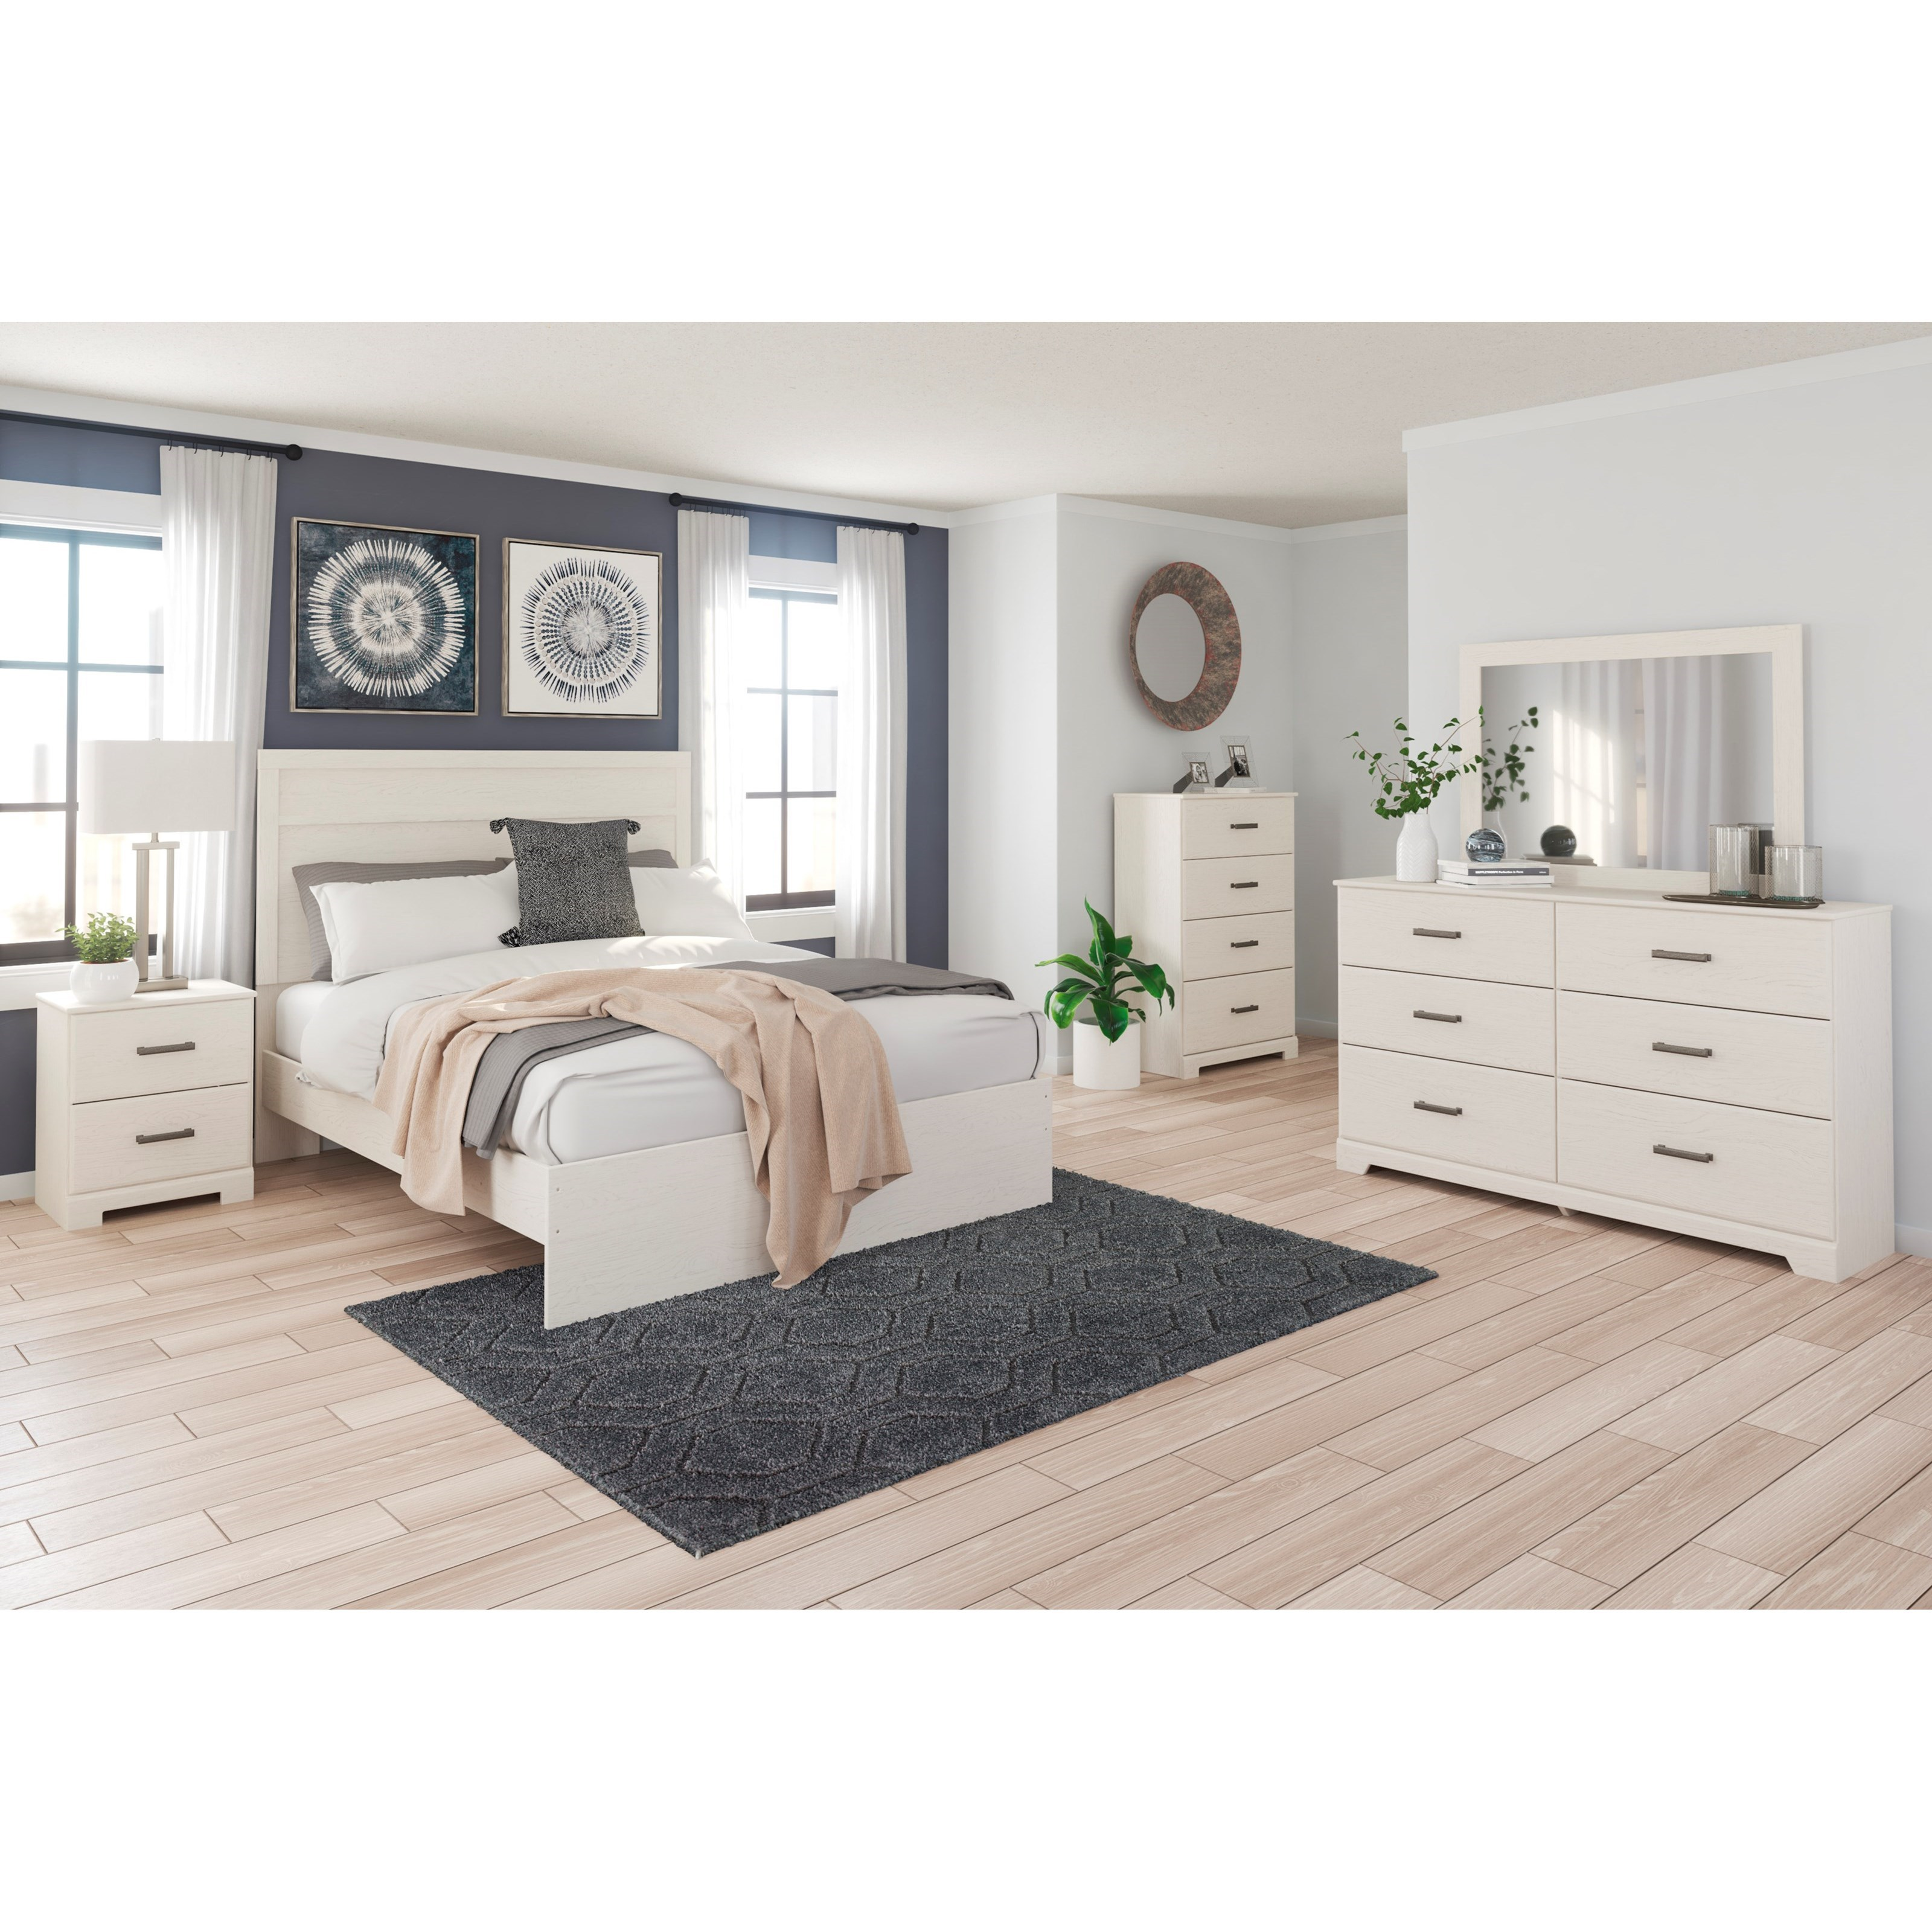 Stelsie Queen Bedroom Group by Signature Design by Ashley at Sparks HomeStore